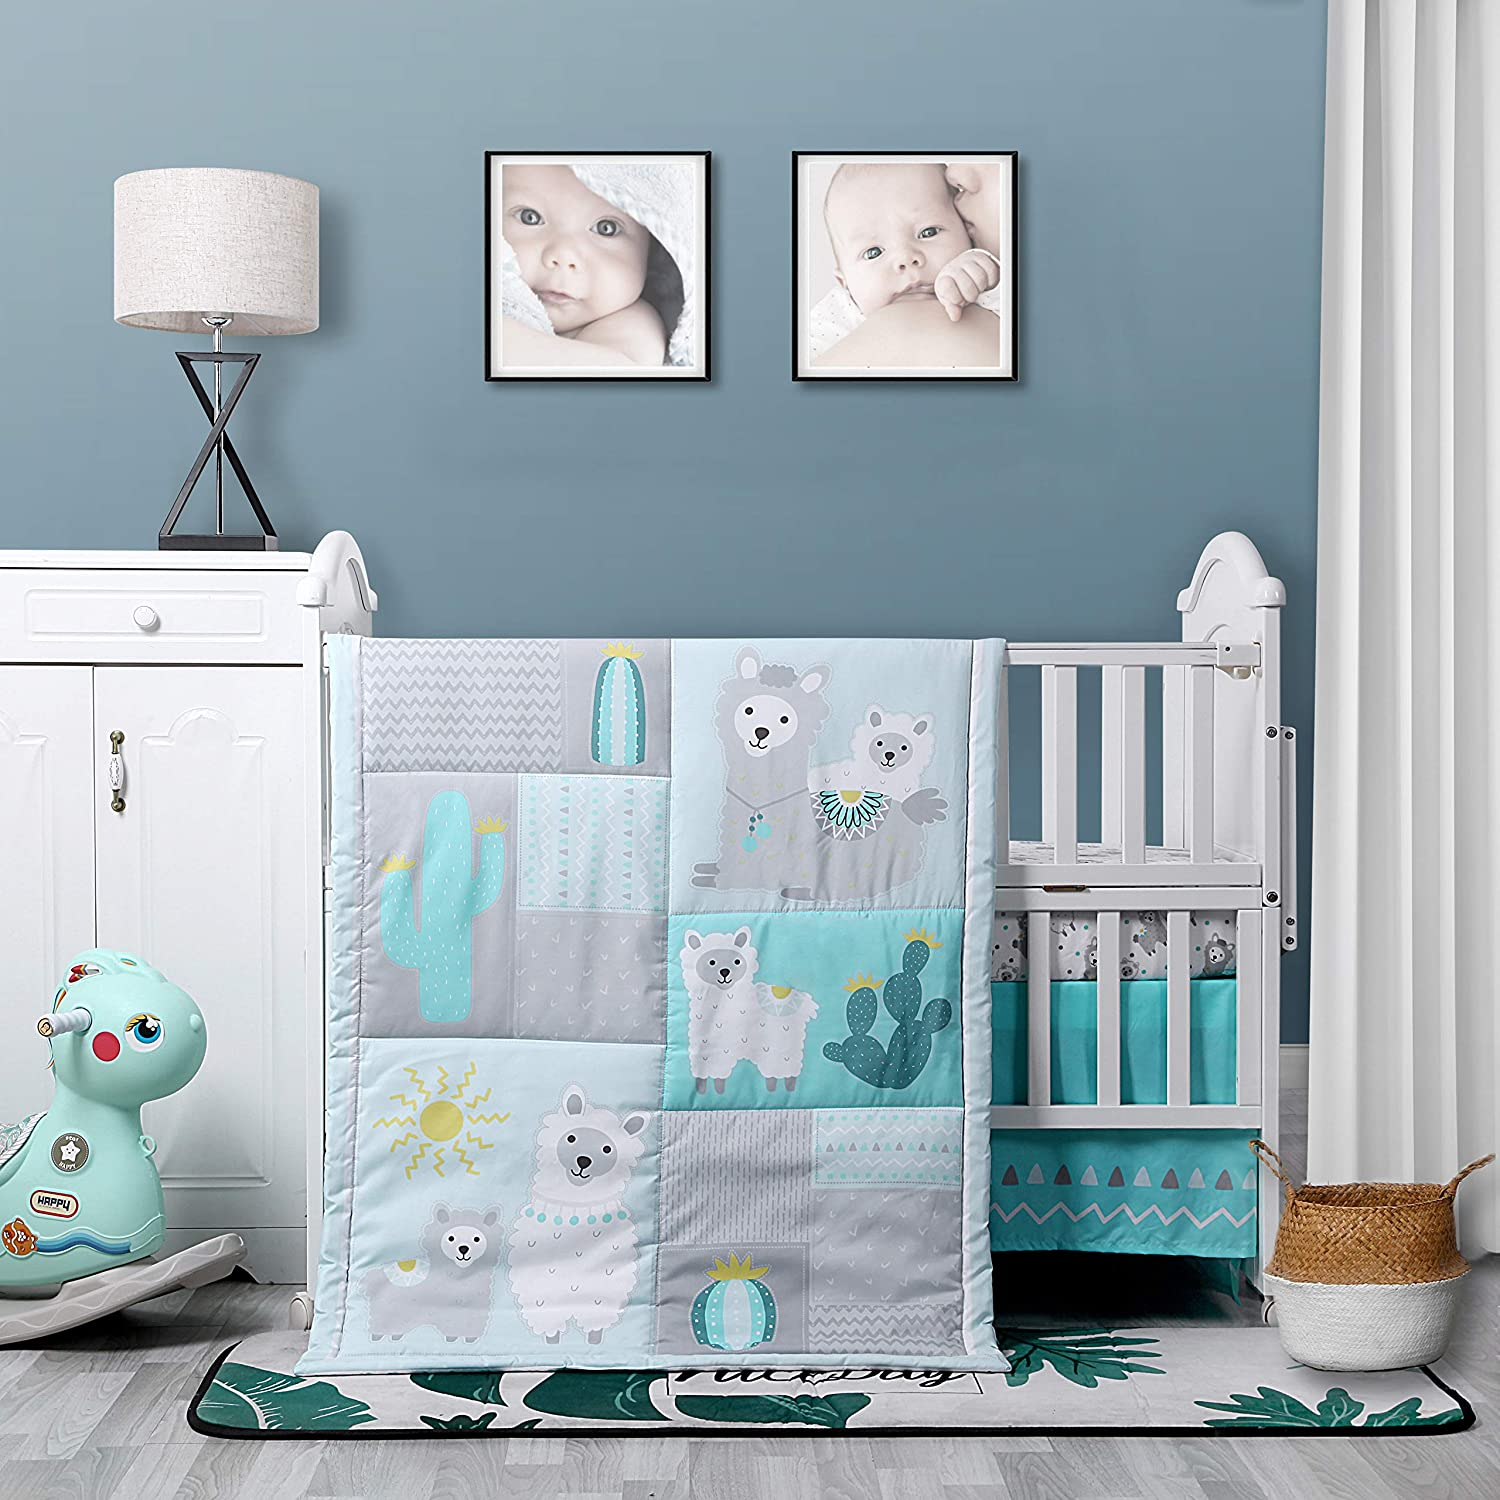 Baby Nursery Turquoise and Grey Crib Bedding Sets: La Premura Llama and Cacti 3 Piece Standard Size Crib Set